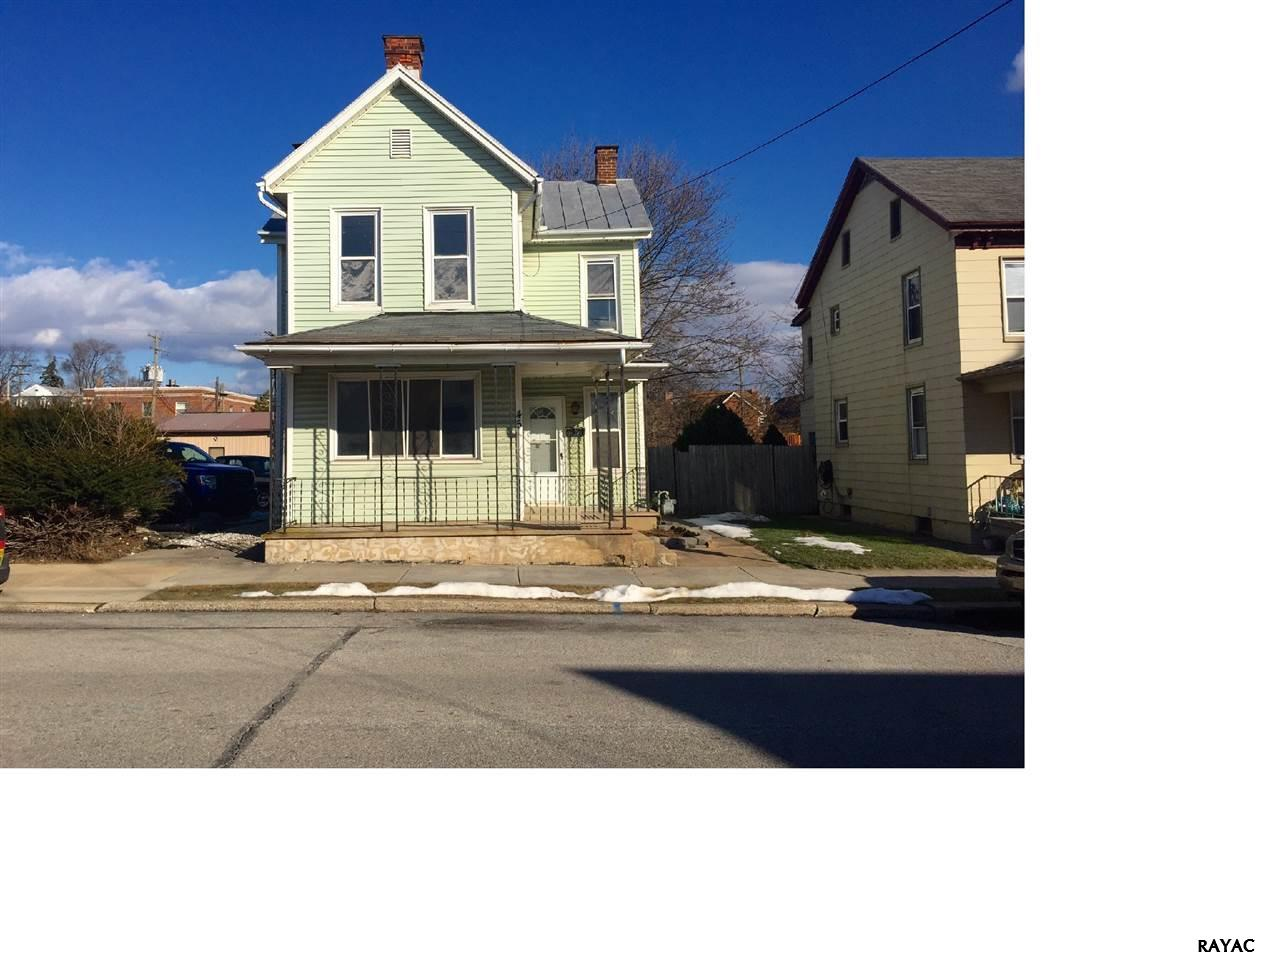 45 S Water St, Spring Grove, PA 17362